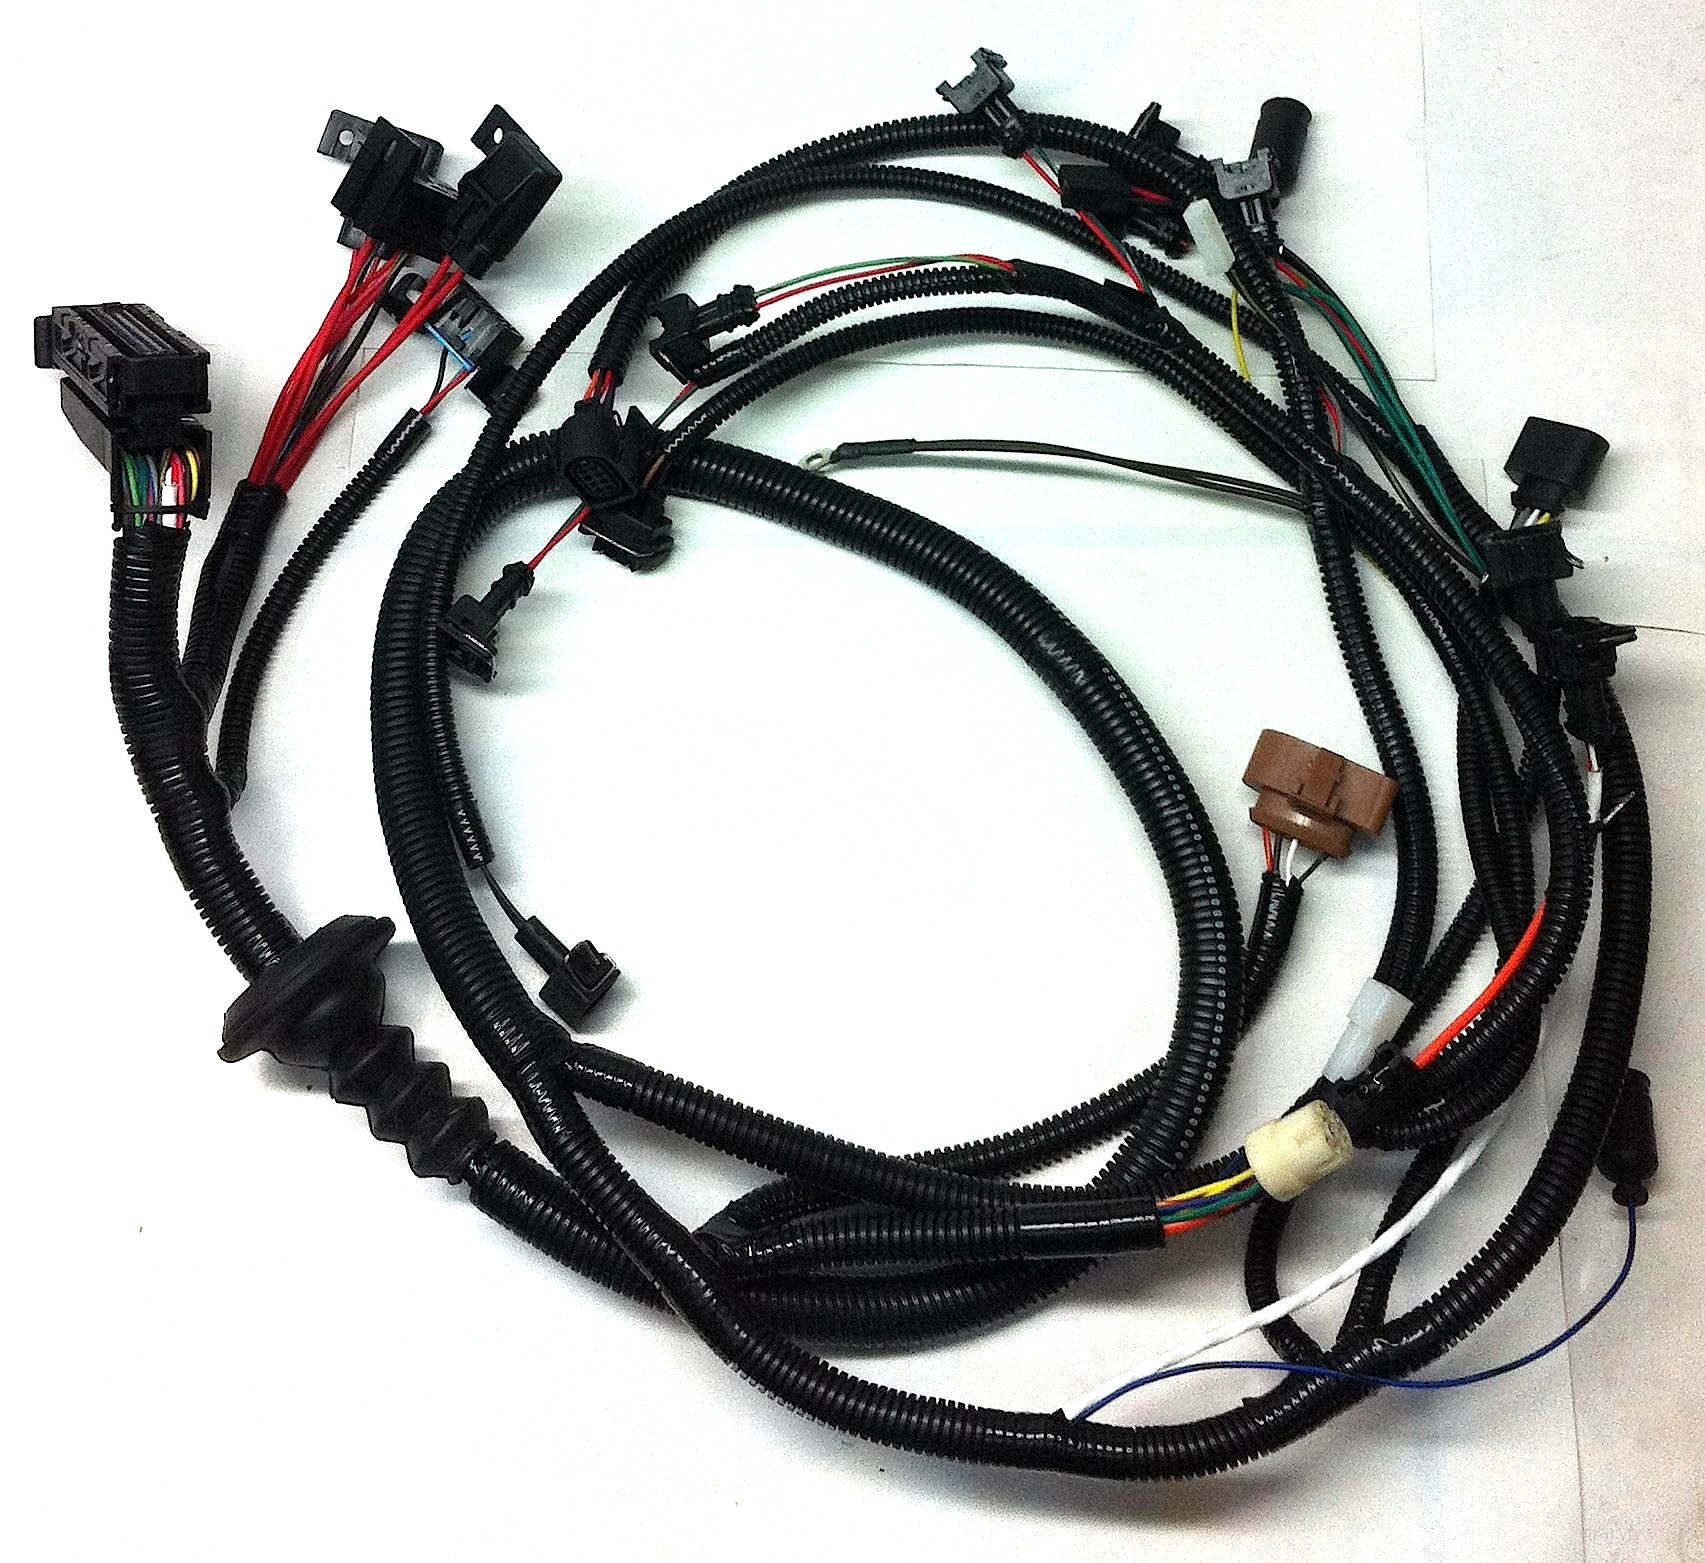 Wiring_Harness_2LR 2lr tiico conversion wiring harness foreign auto & supply, inc tdi swap wiring harness at virtualis.co